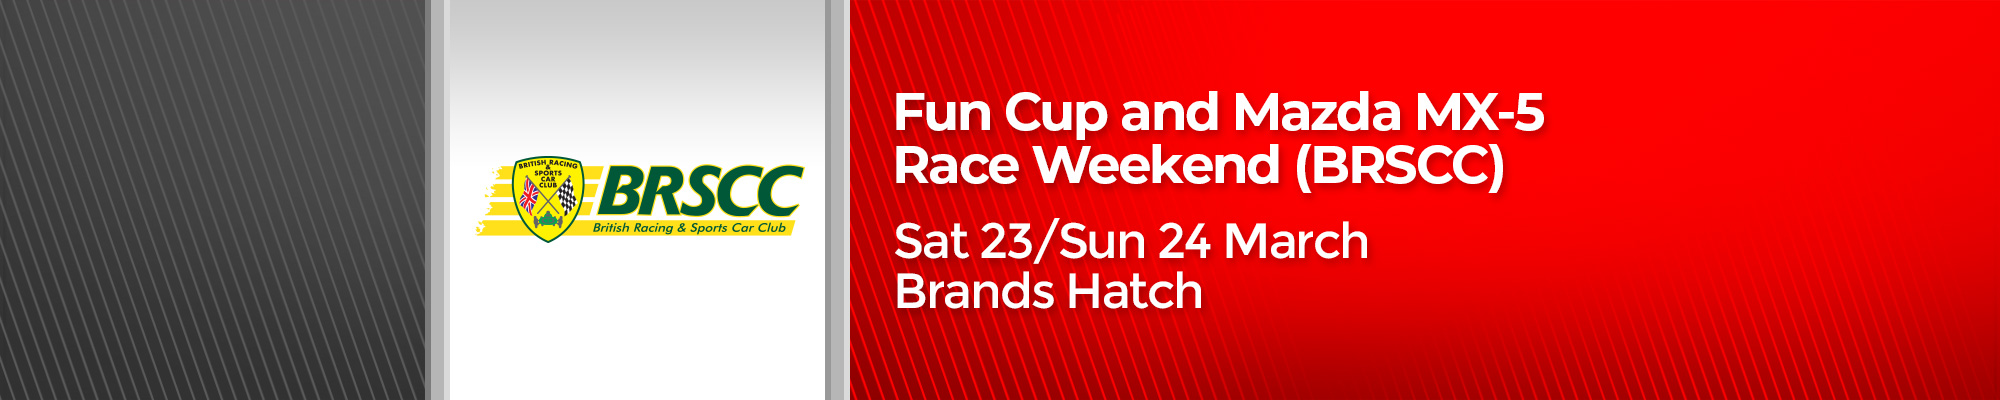 Fun Cup and Mazda MX-5 Race Weekend